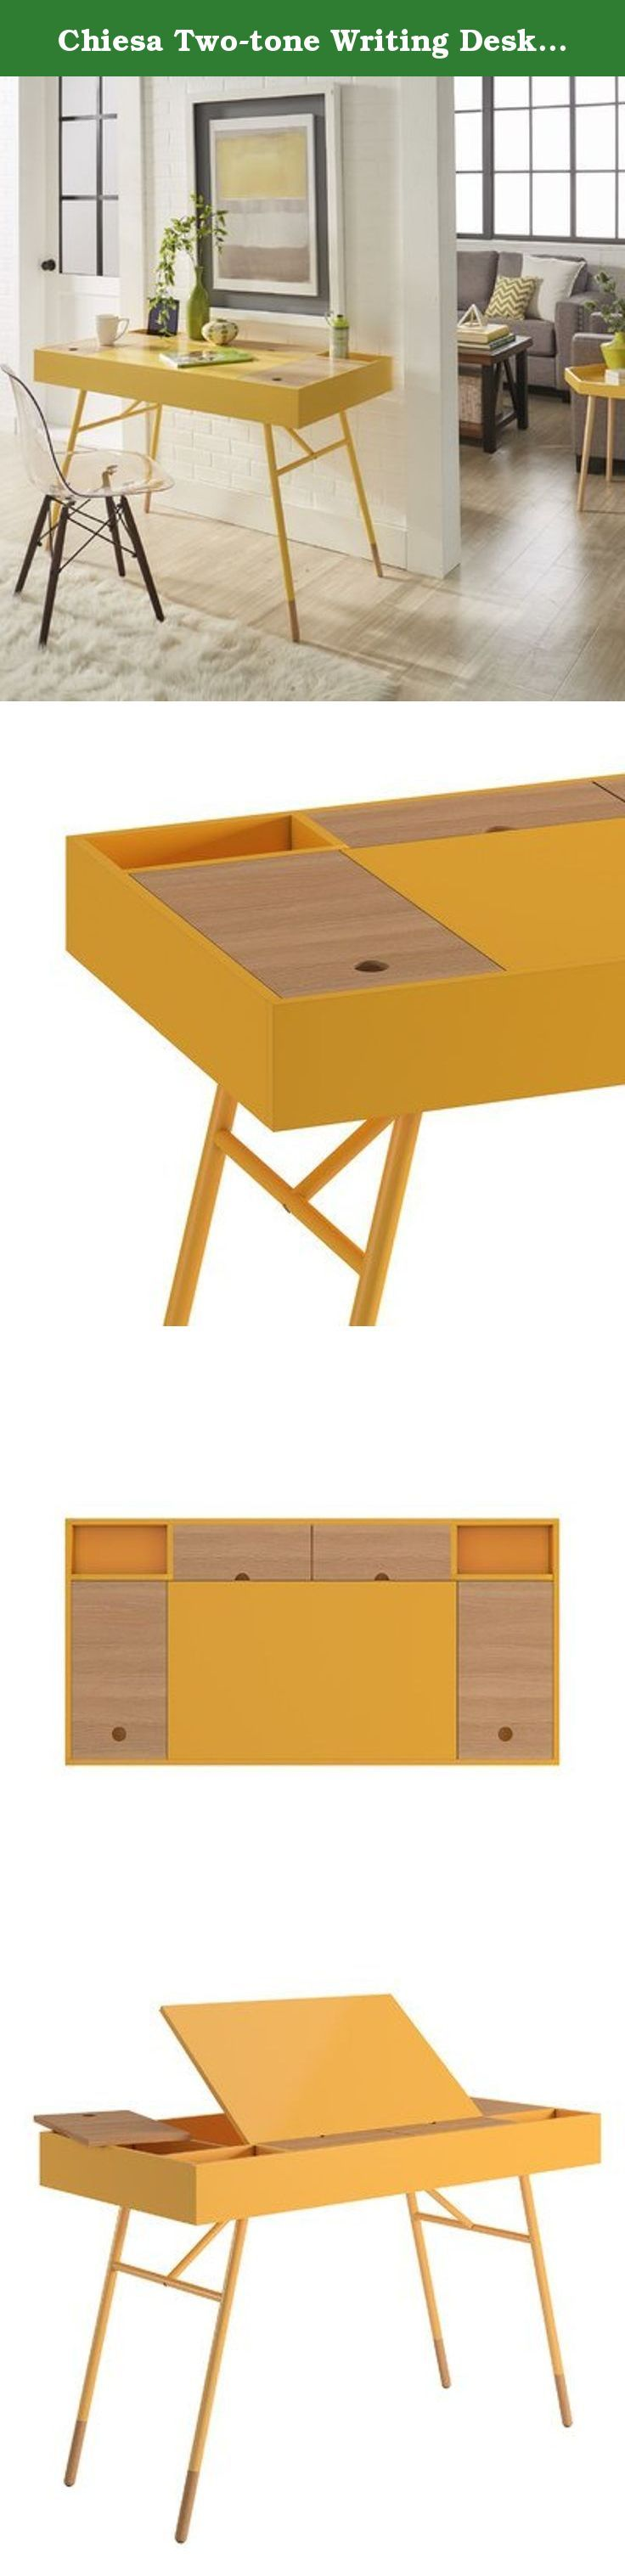 Chiesa Two-tone Writing Desk with Flip-Up Drawer In Yellow. Features: Chiesa collection; Two-tone flip up drawer included; Flip up drawers on the desk desk area for additional organization and storage space; Includes a hidden power plug hub electric outlet for cable management; Minimalist design Product Details: Desk Type: Writing desk; Assembly Required: Yes; Product Warranty: 1 Year manufacturer's warranty.